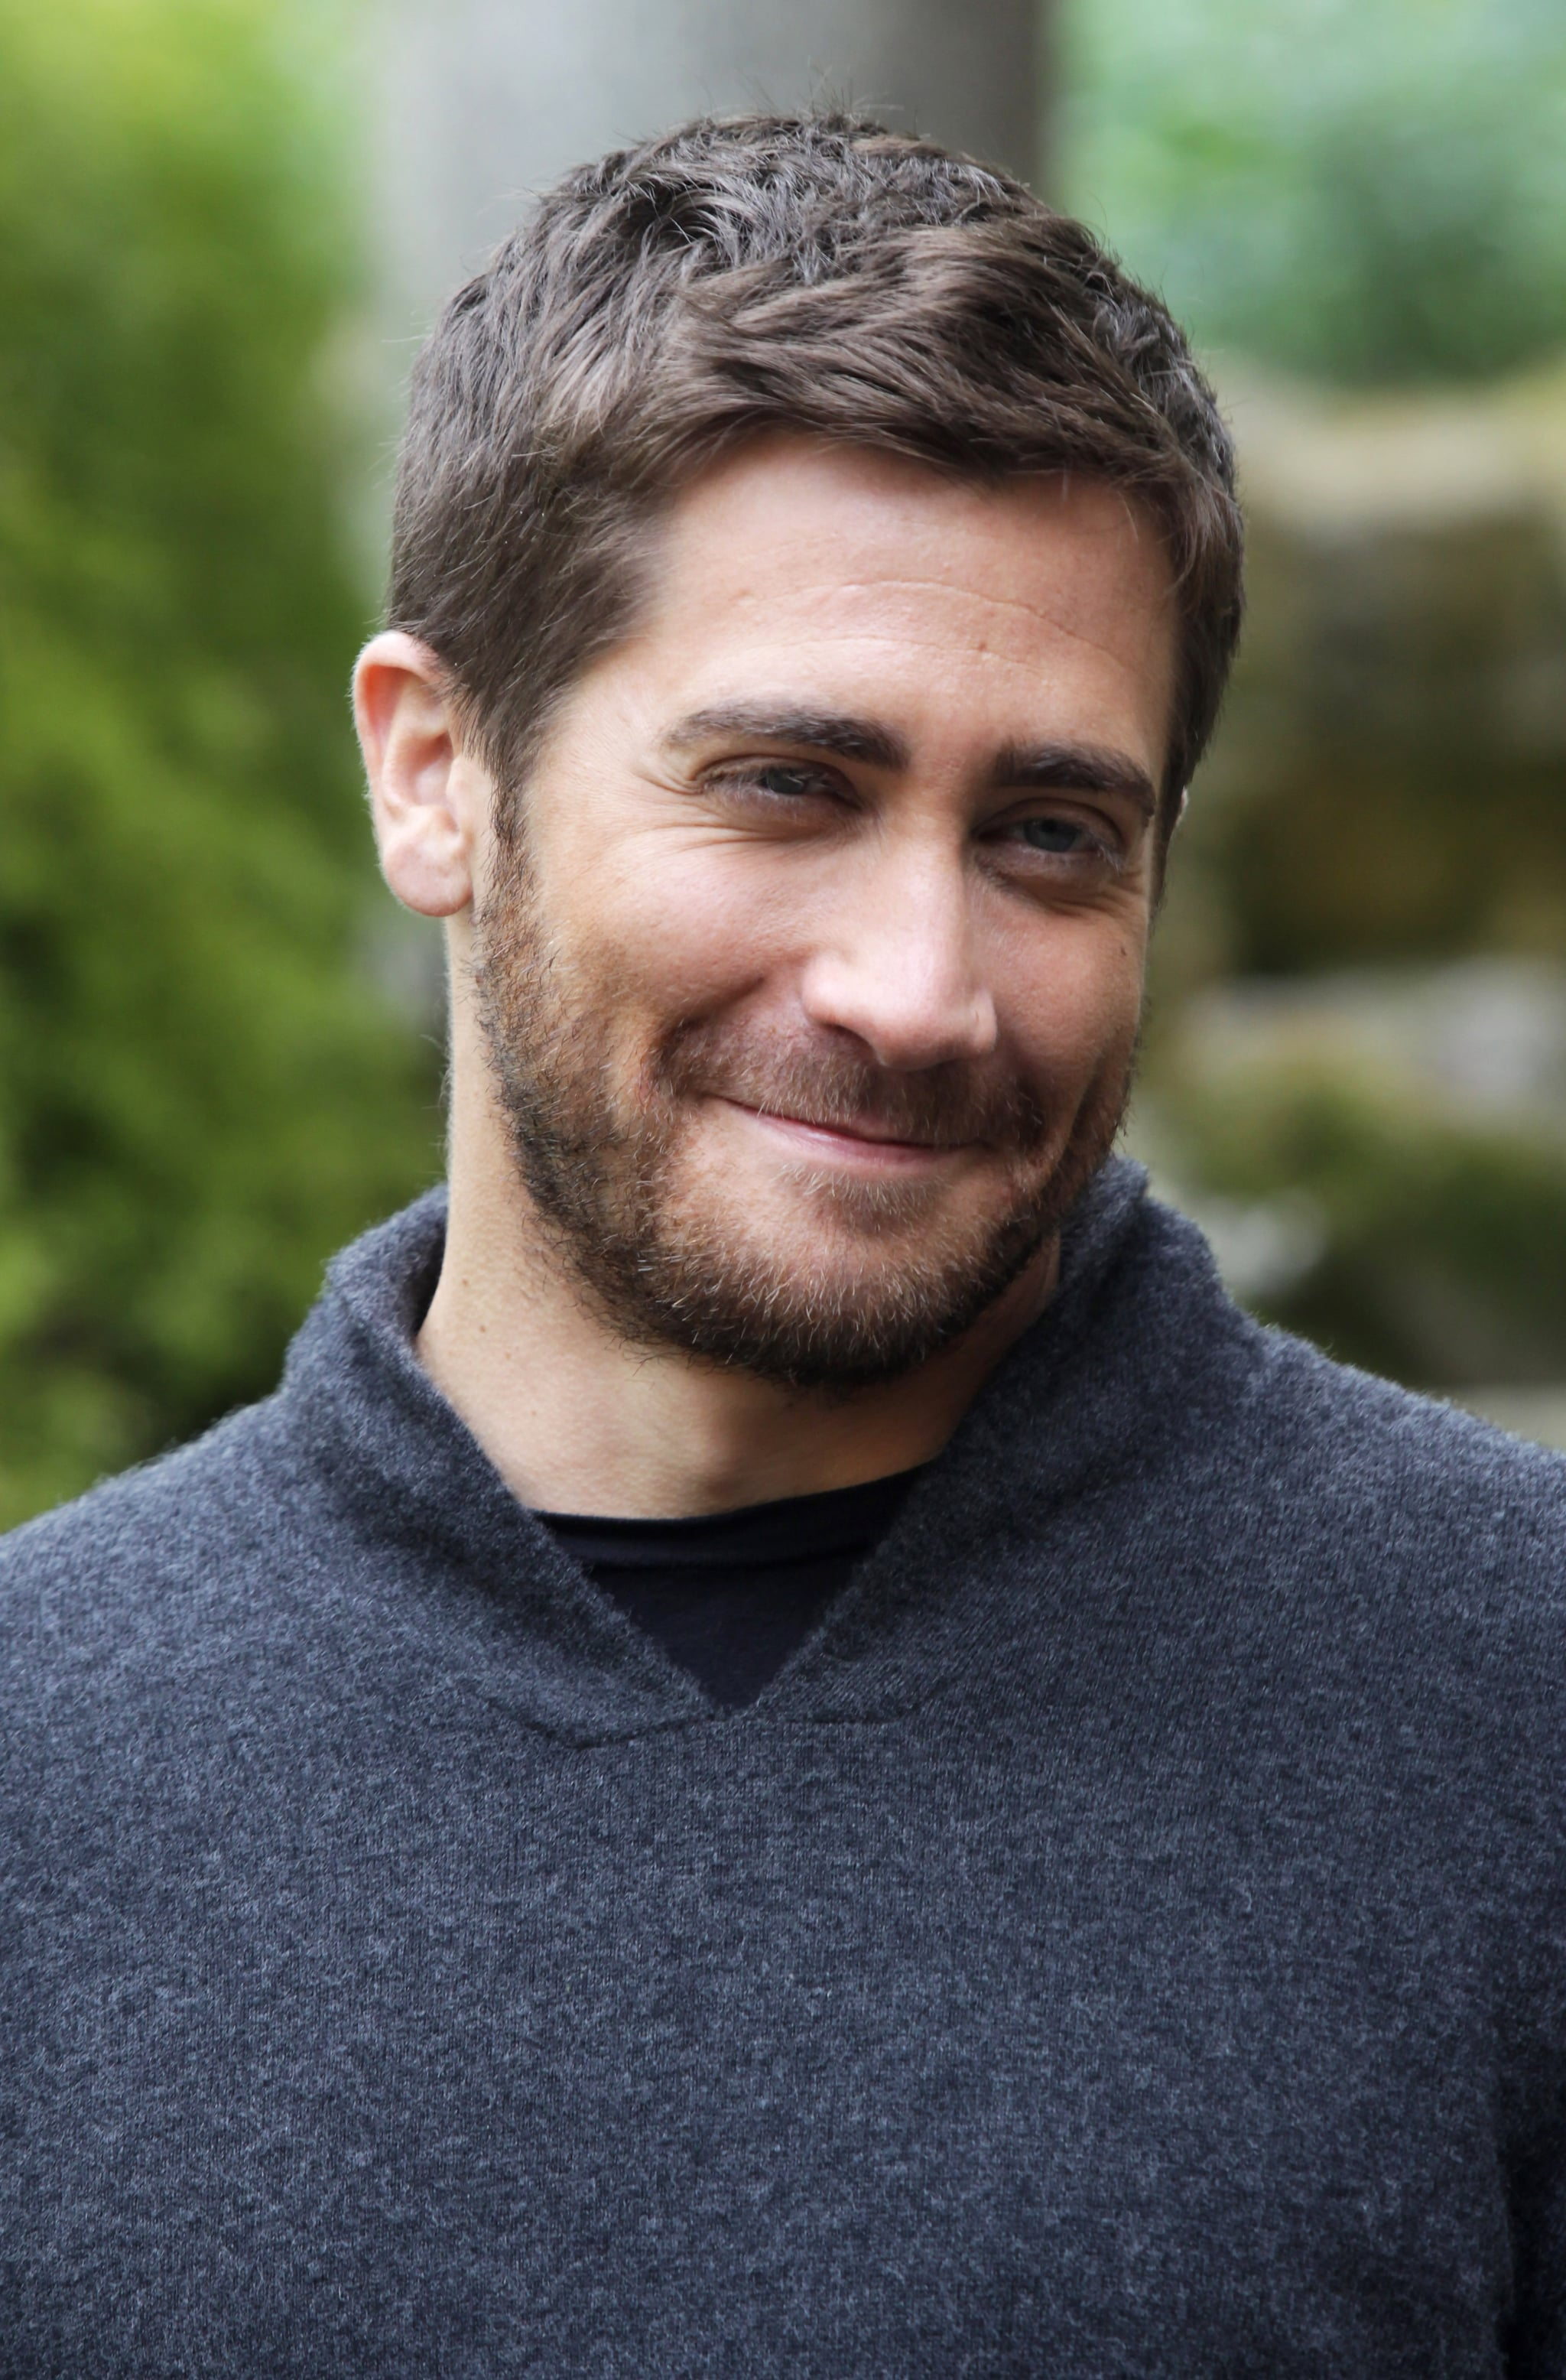 Jake Gyllenhaal Lets Italy In On the Source Code Action